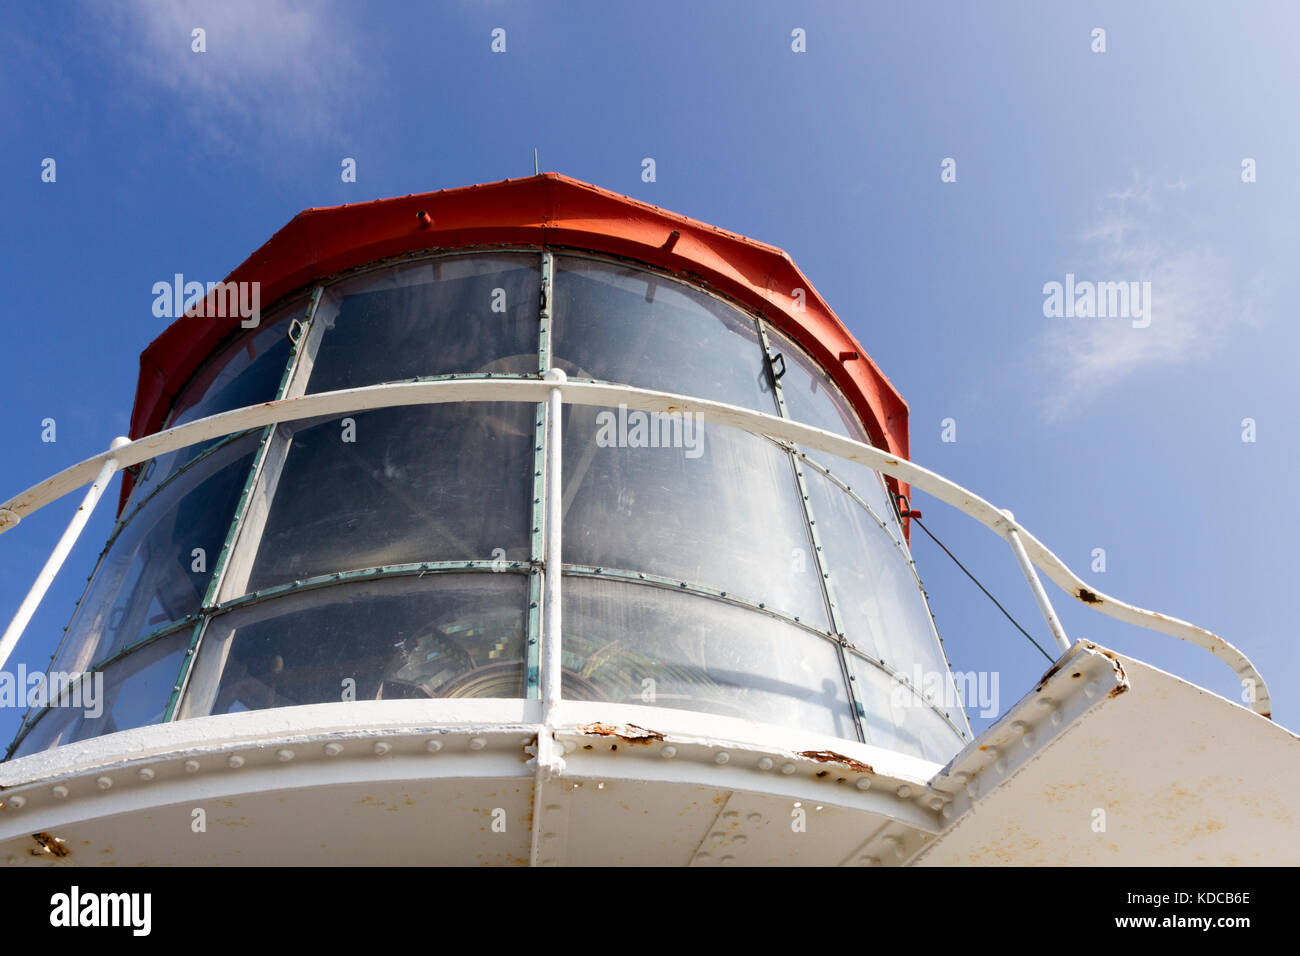 The lighthouse Långe Jan on Öland in Sweden - Stock Image